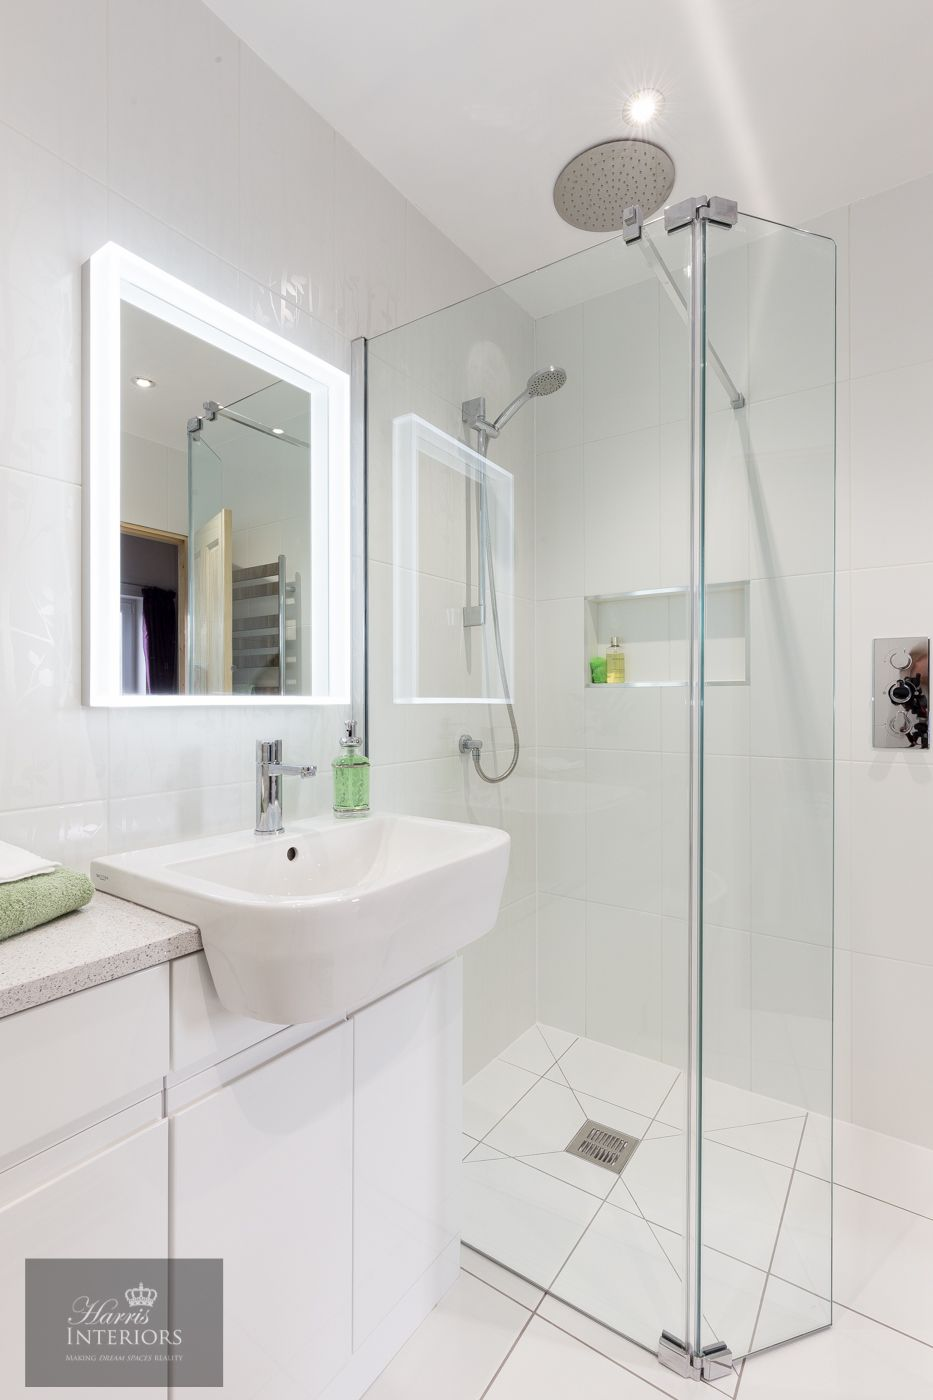 Bathroom decor ideas | Amazing shower | Visit our showroom in Rodley ...